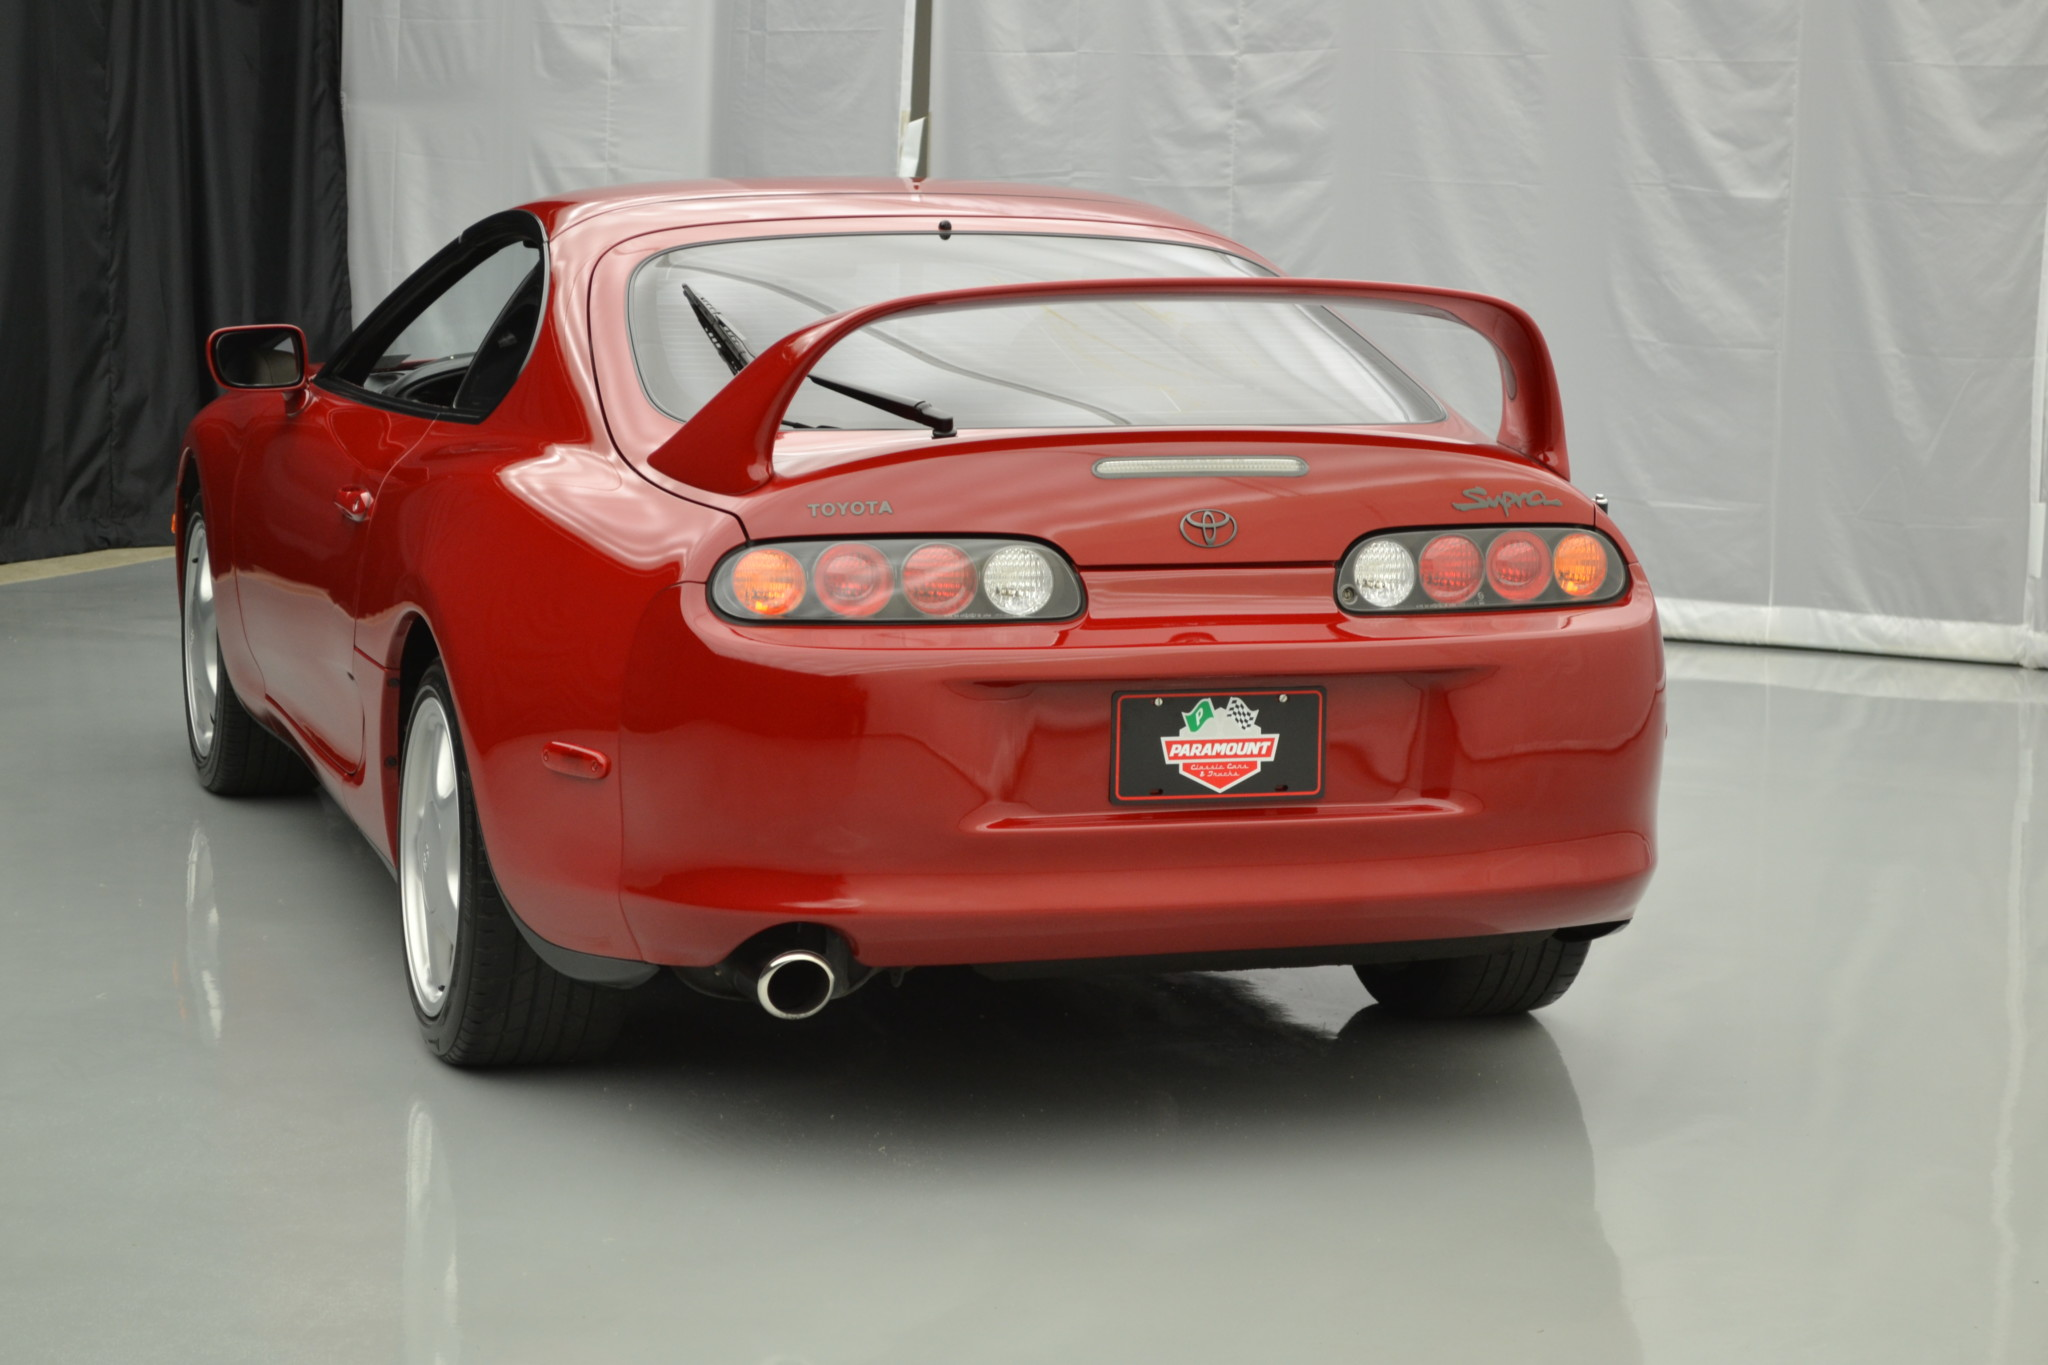 b6d0e837e84f Pinch Your Pennies and Buy This 1994 Toyota Supra With Just 7